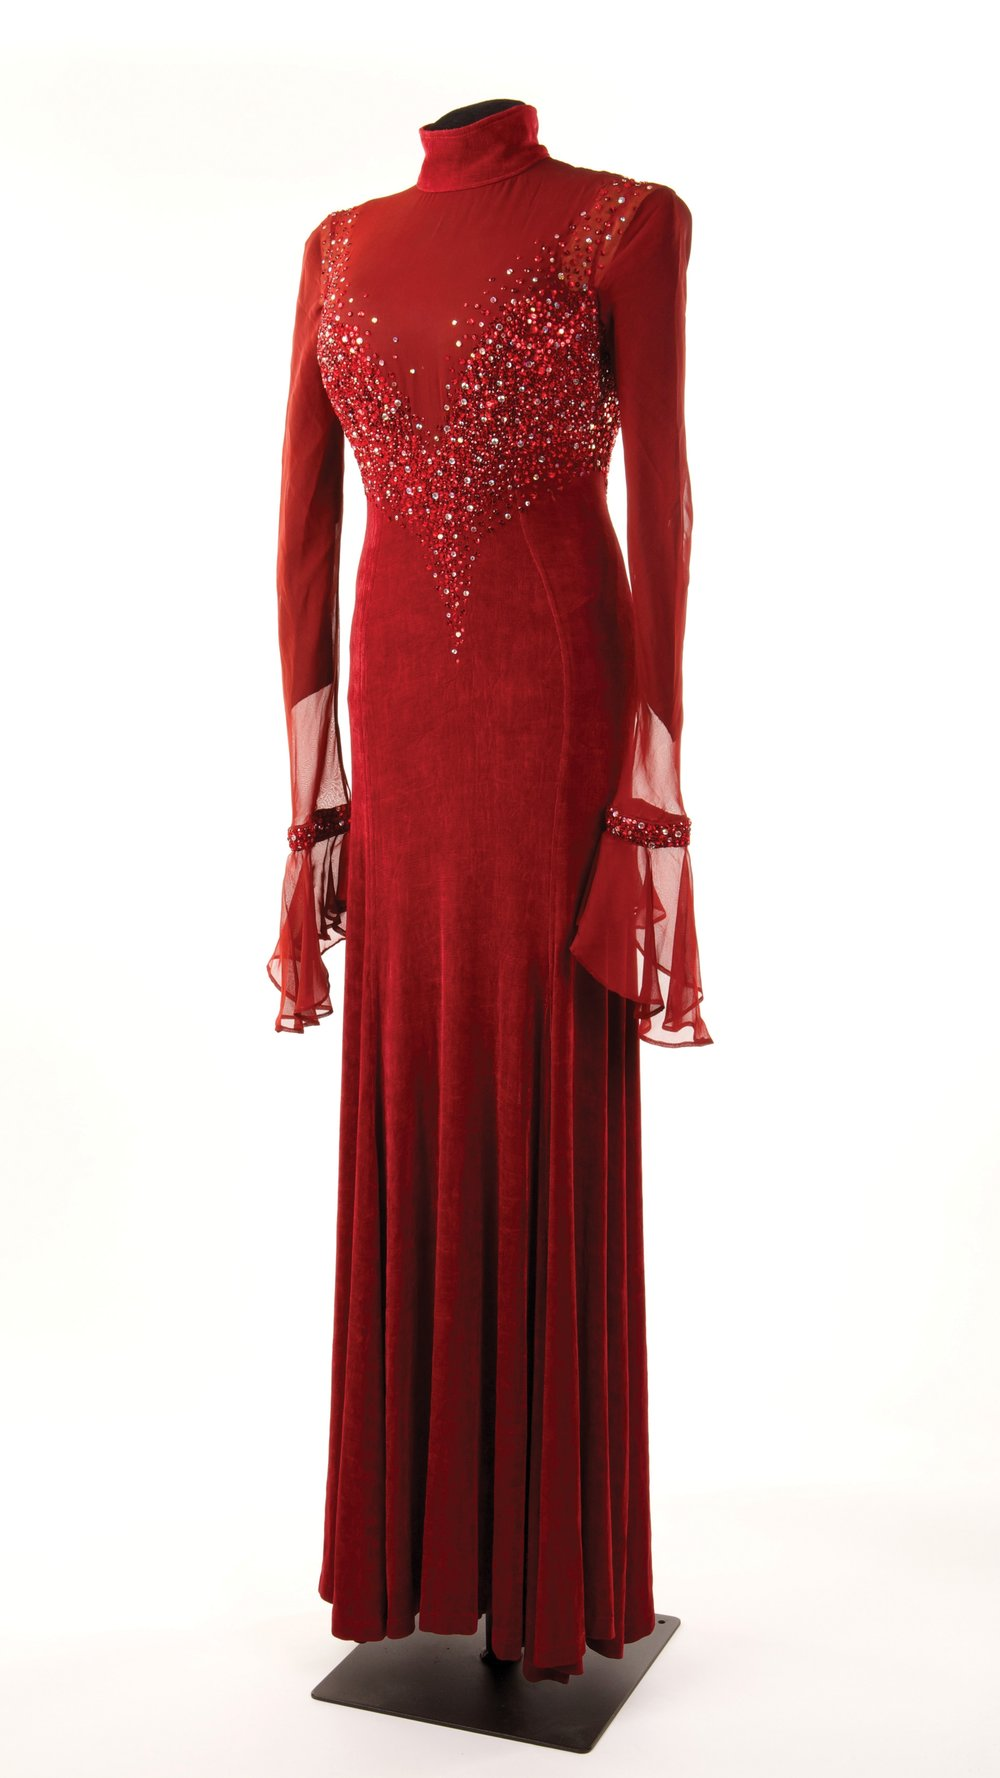 ACM Red Dress '93.jpg